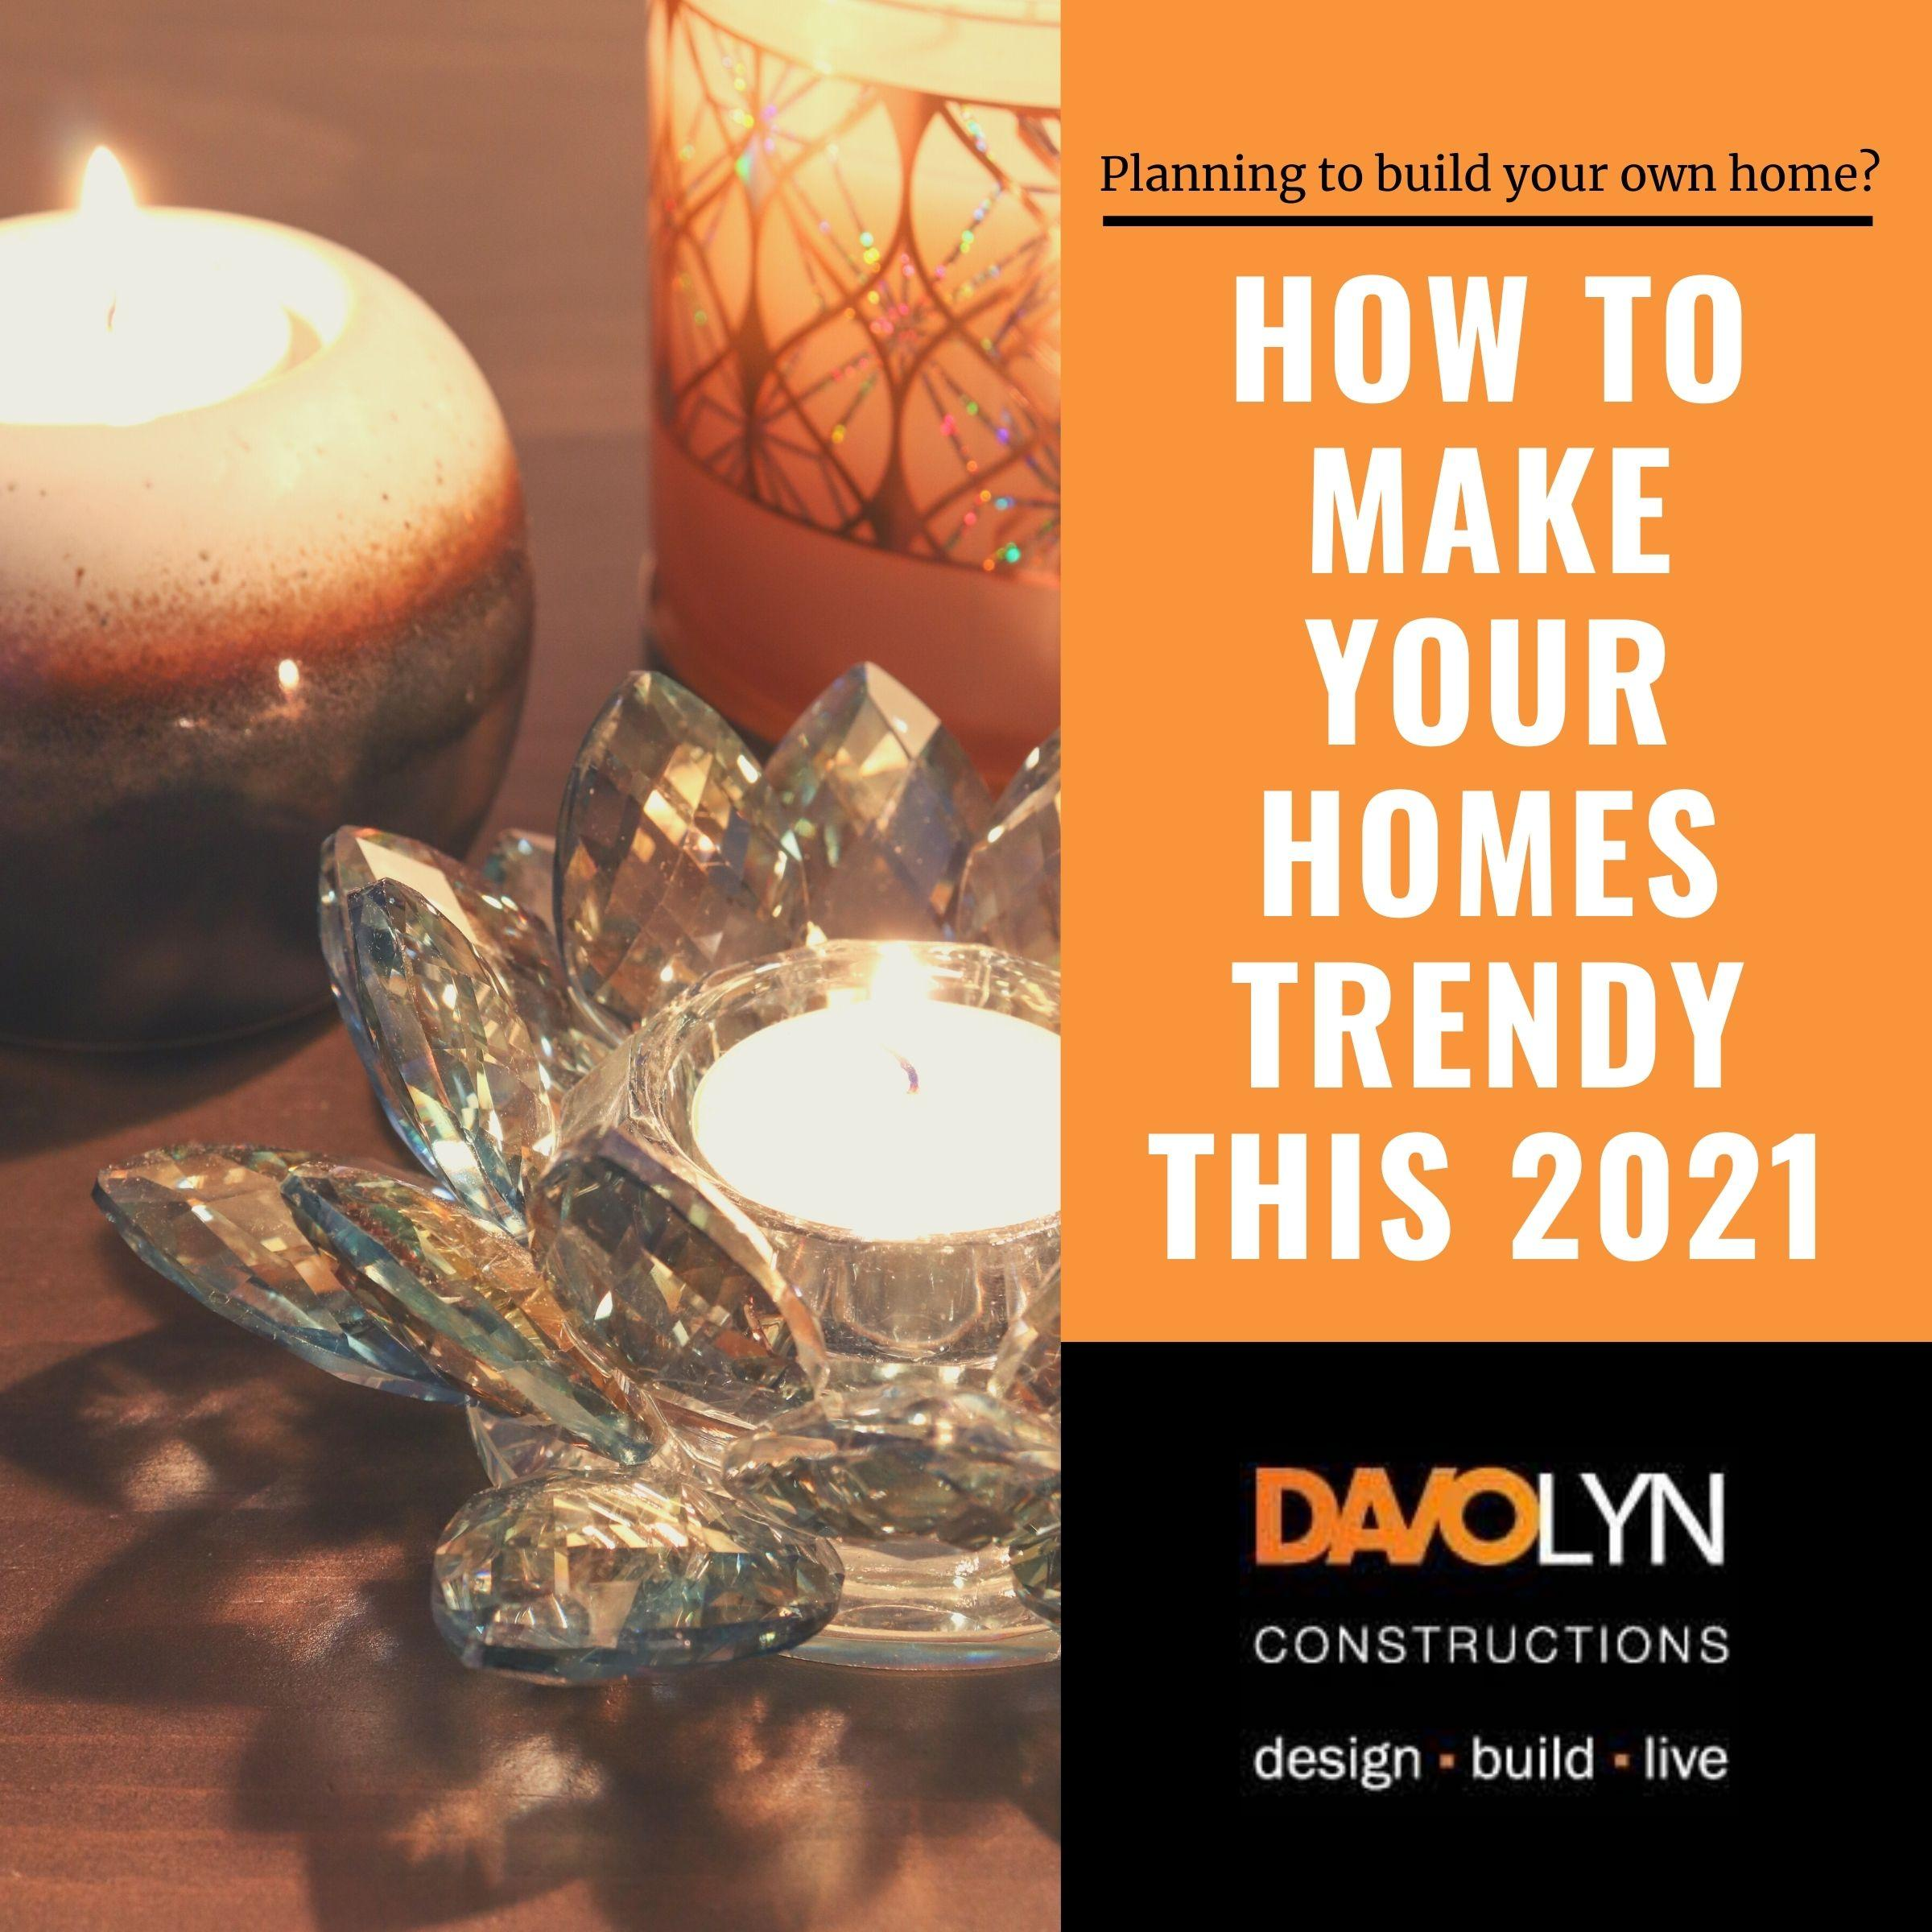 How to Make Your Homes Trendy This 2021